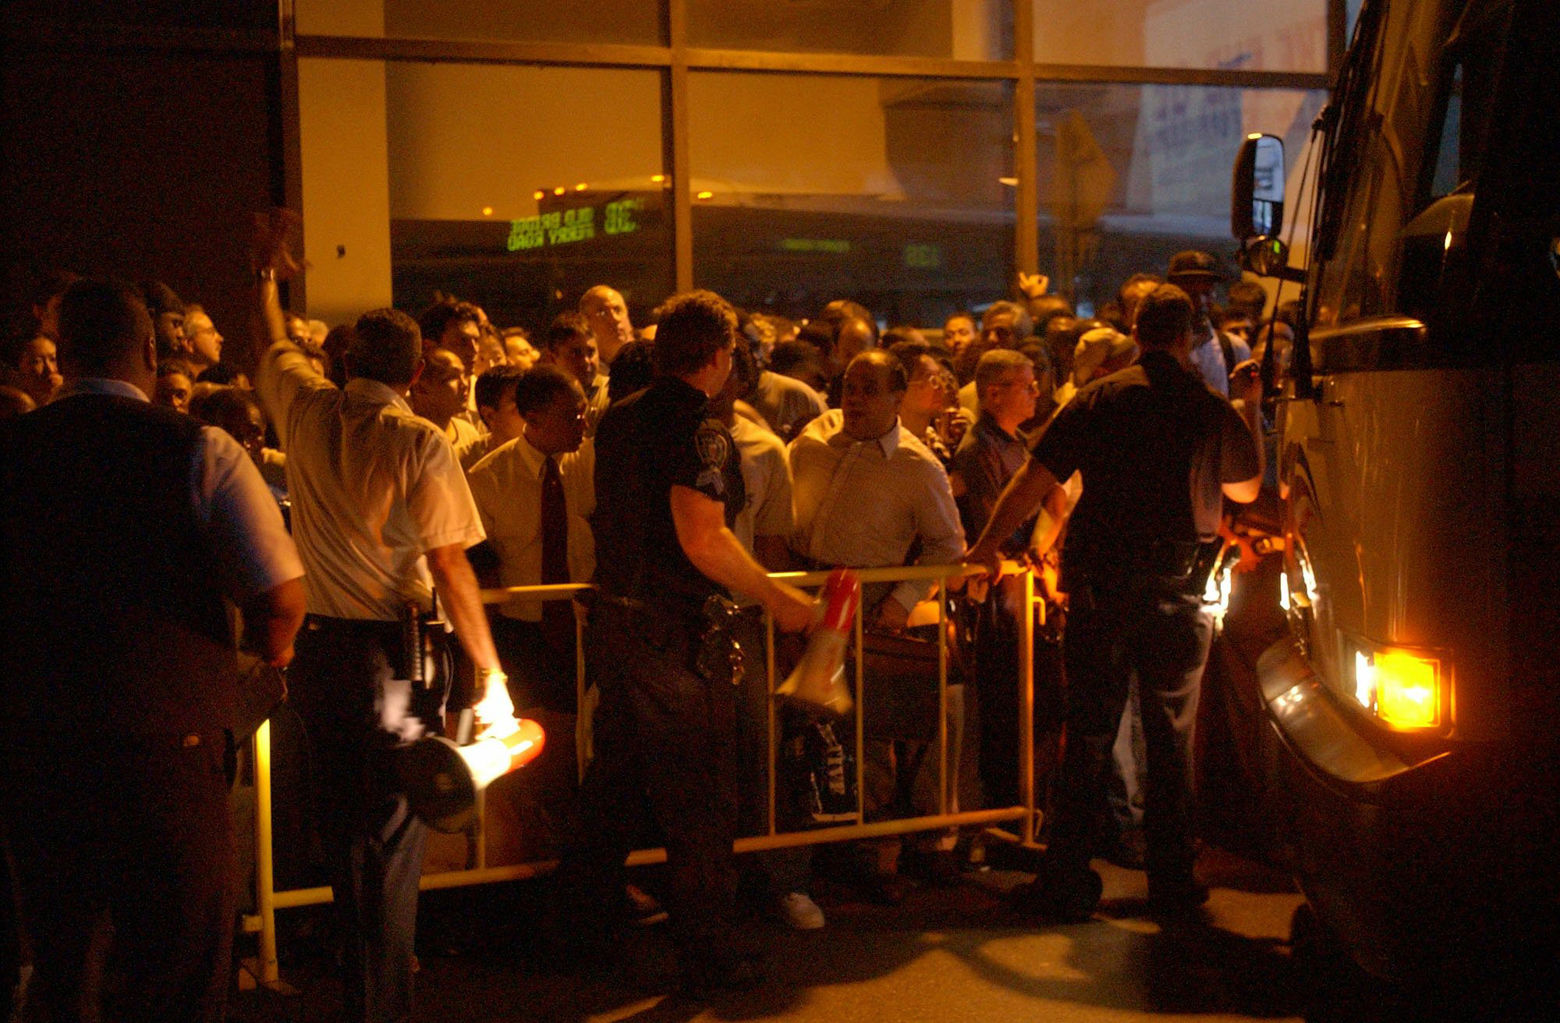 Crowds line up for buses at Port Authority bus terminal in New York during a massive power outage Thursday, Aug. 14, 2003, that stretched from New York to Detroit and into Canada. (AP Photo/Christie Johnston)